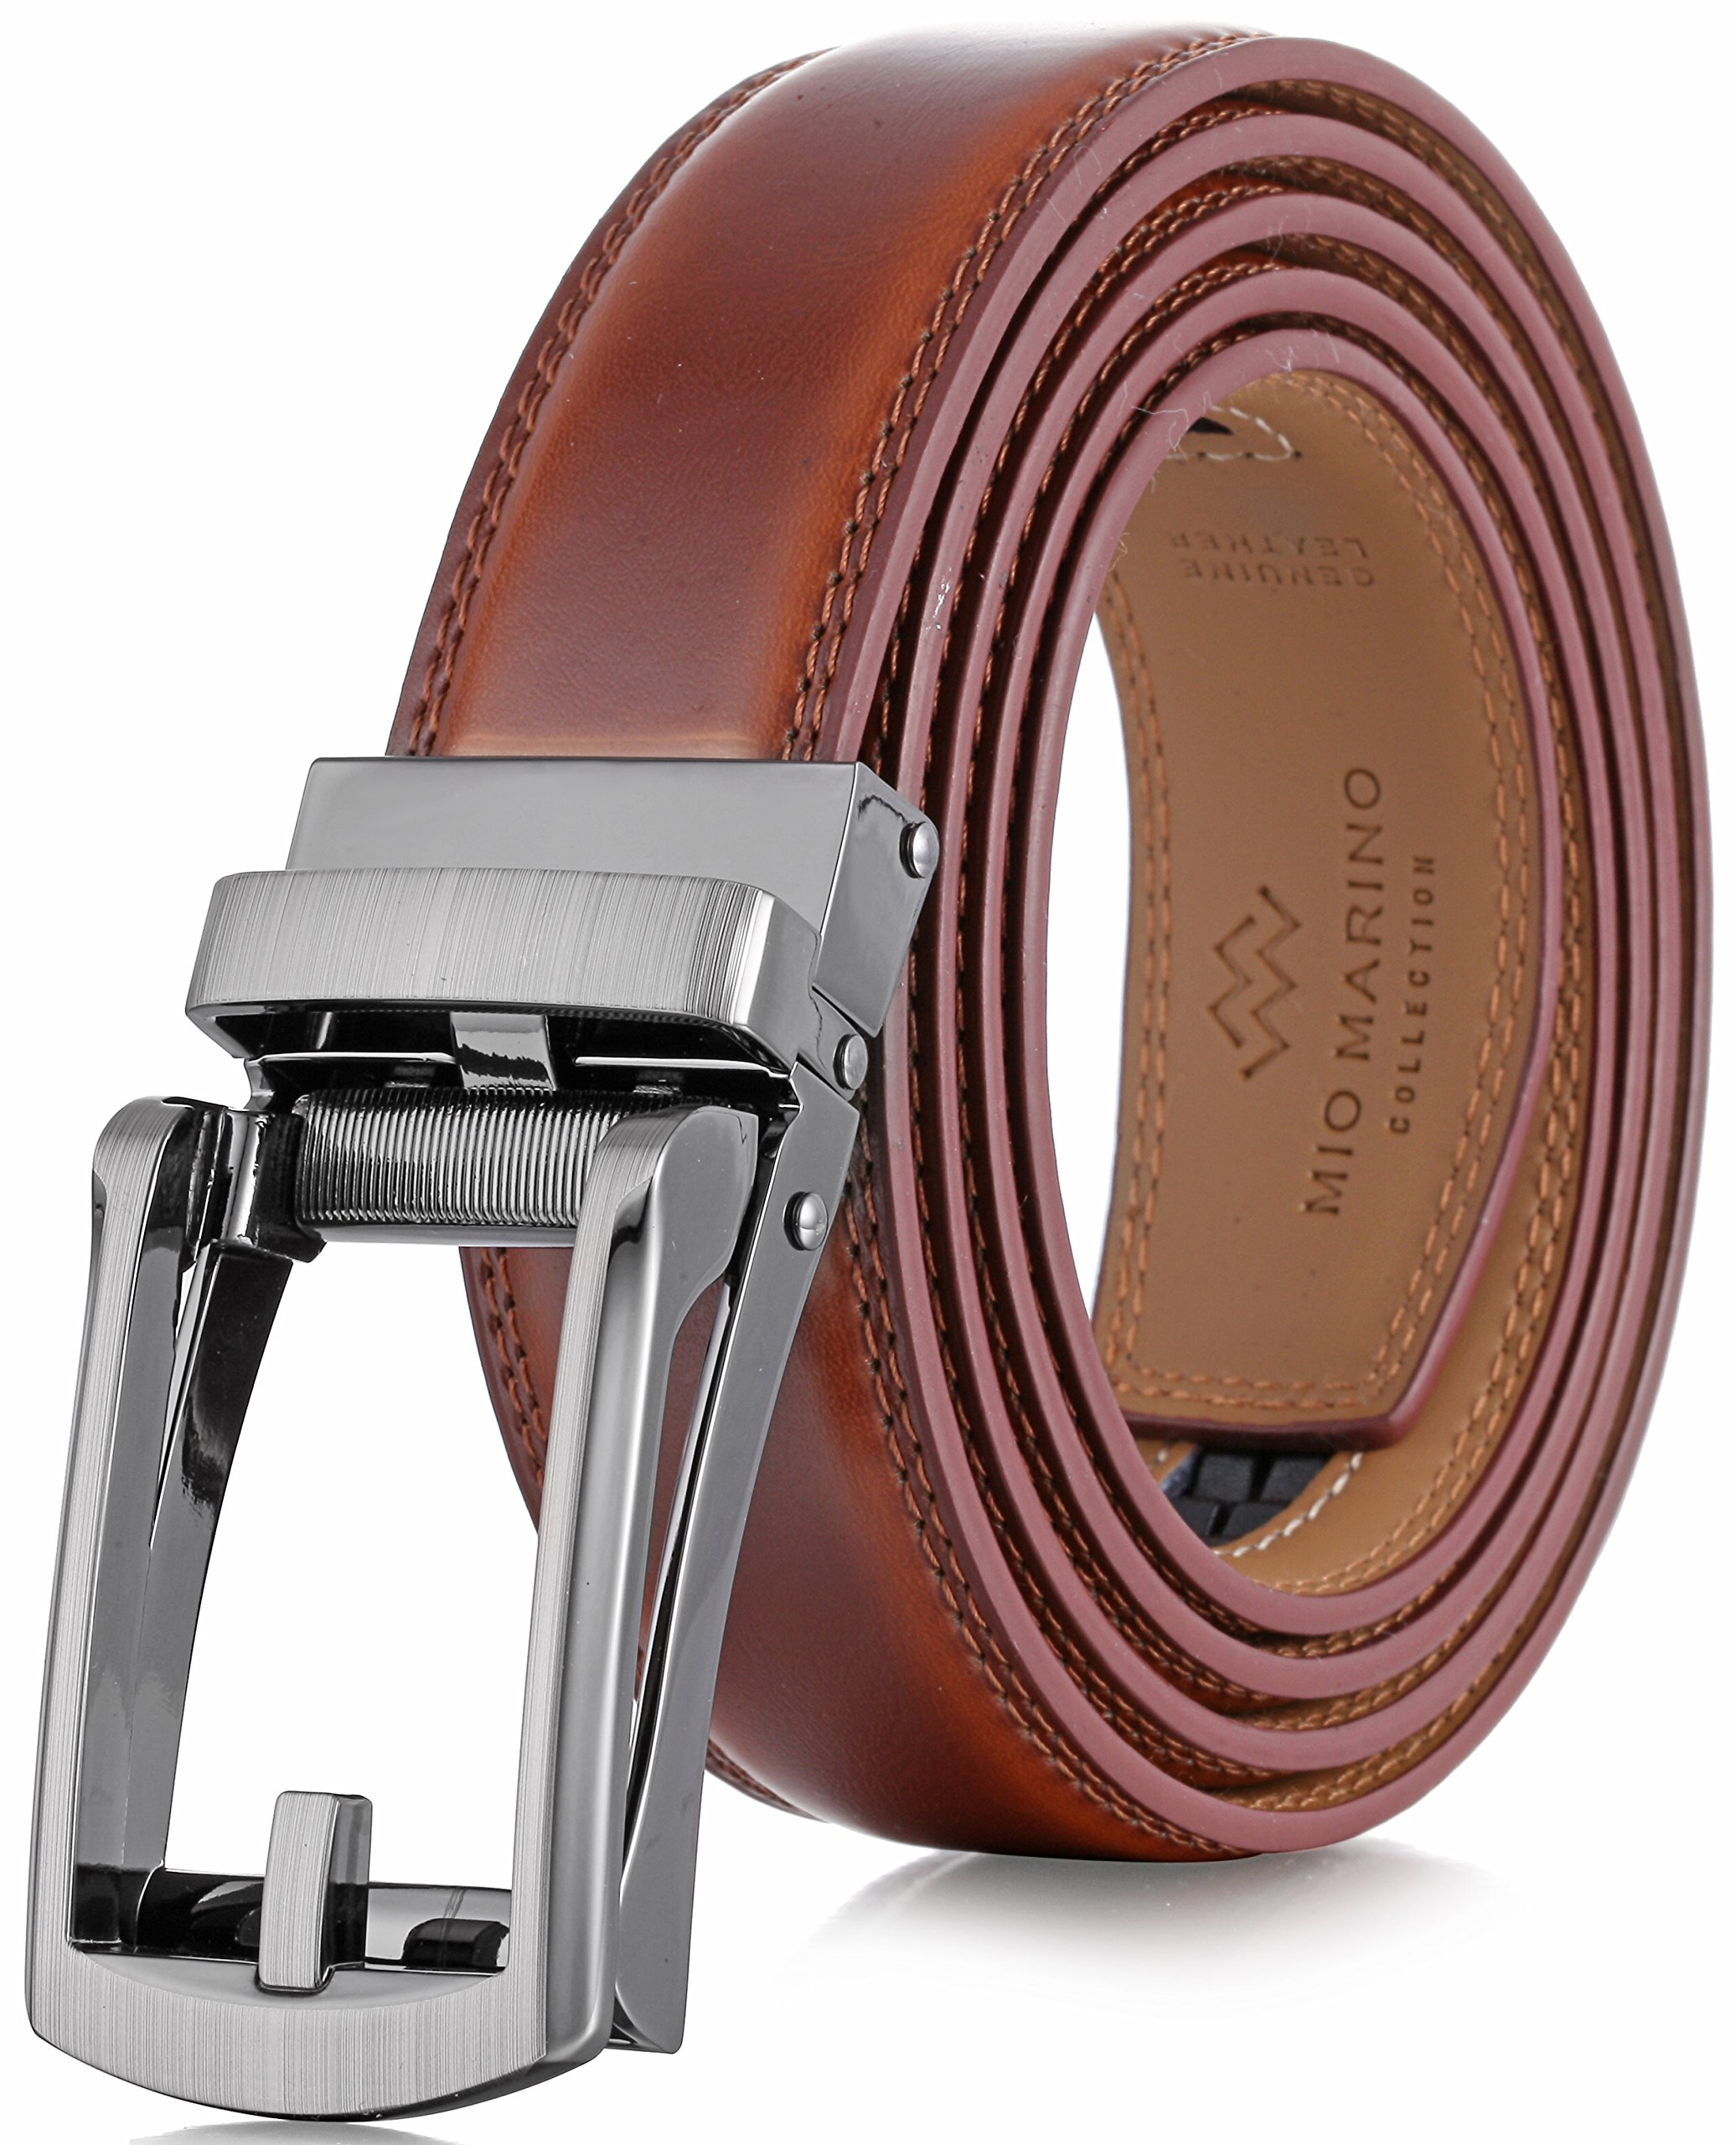 Marino Men's Genuine Leather Ratchet Dress Belt with Open Linxx Buckle, Enclosed in an Elegant Gift Box - Burnt Umber - Style 37 - Custom: Up to 44'' Waist